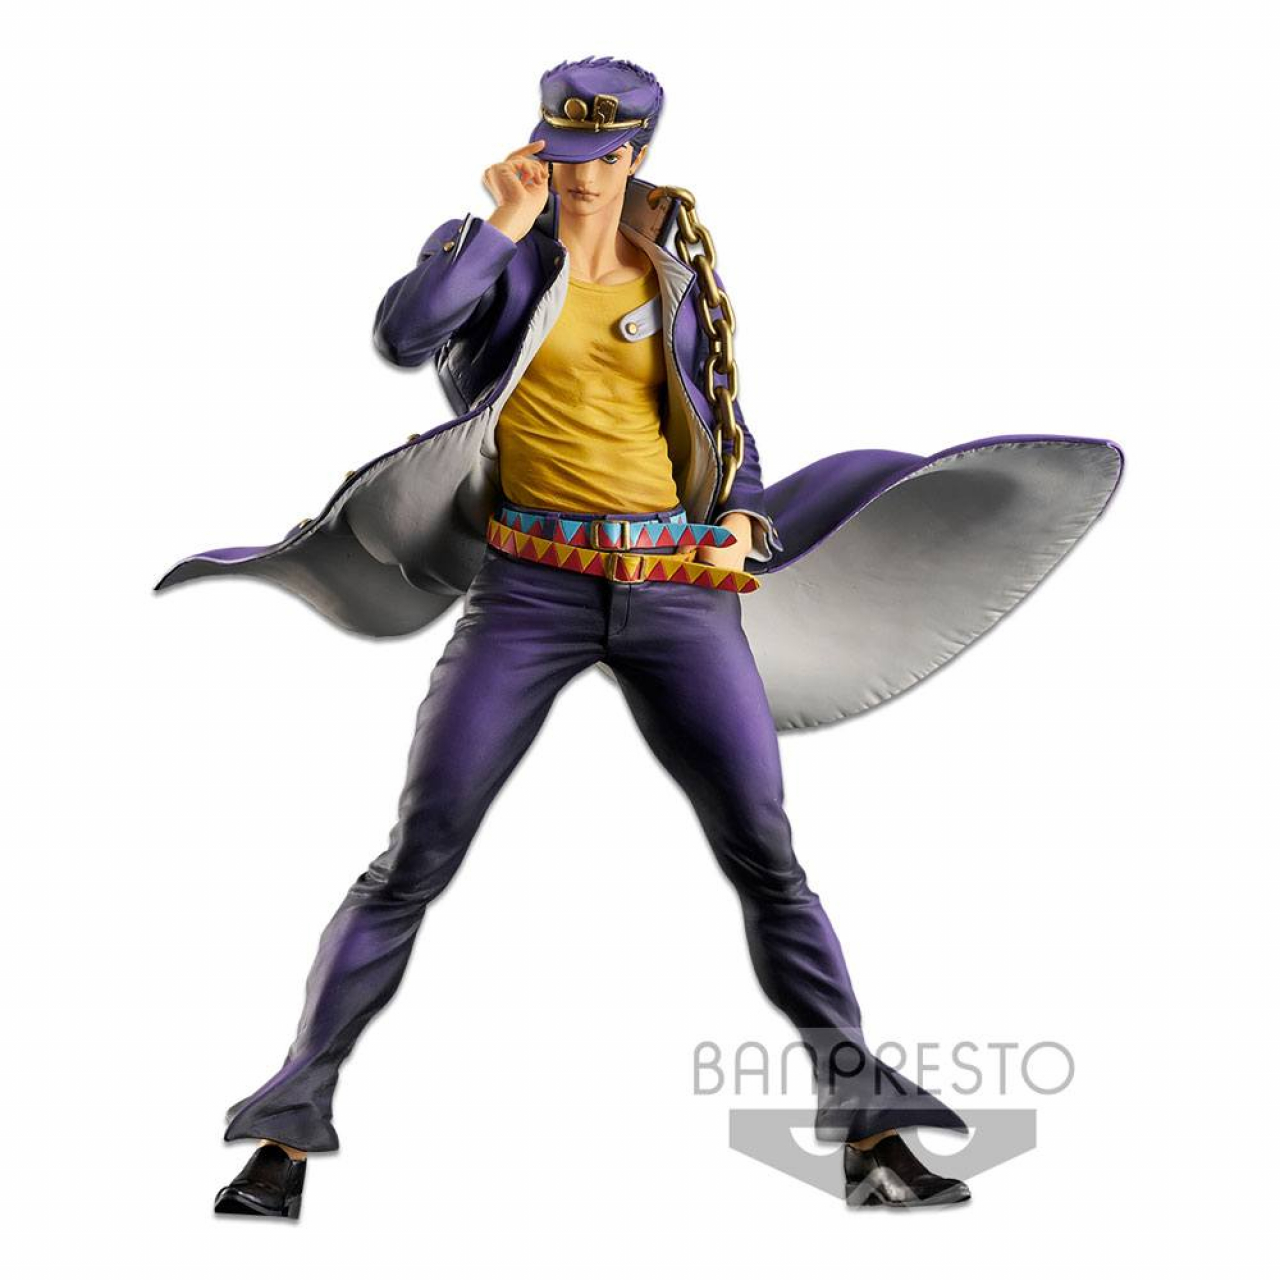 Jojo's Bizarre Adventure Master Star Piece PVC Statue Jotaro Kujo The Brush 28 cm